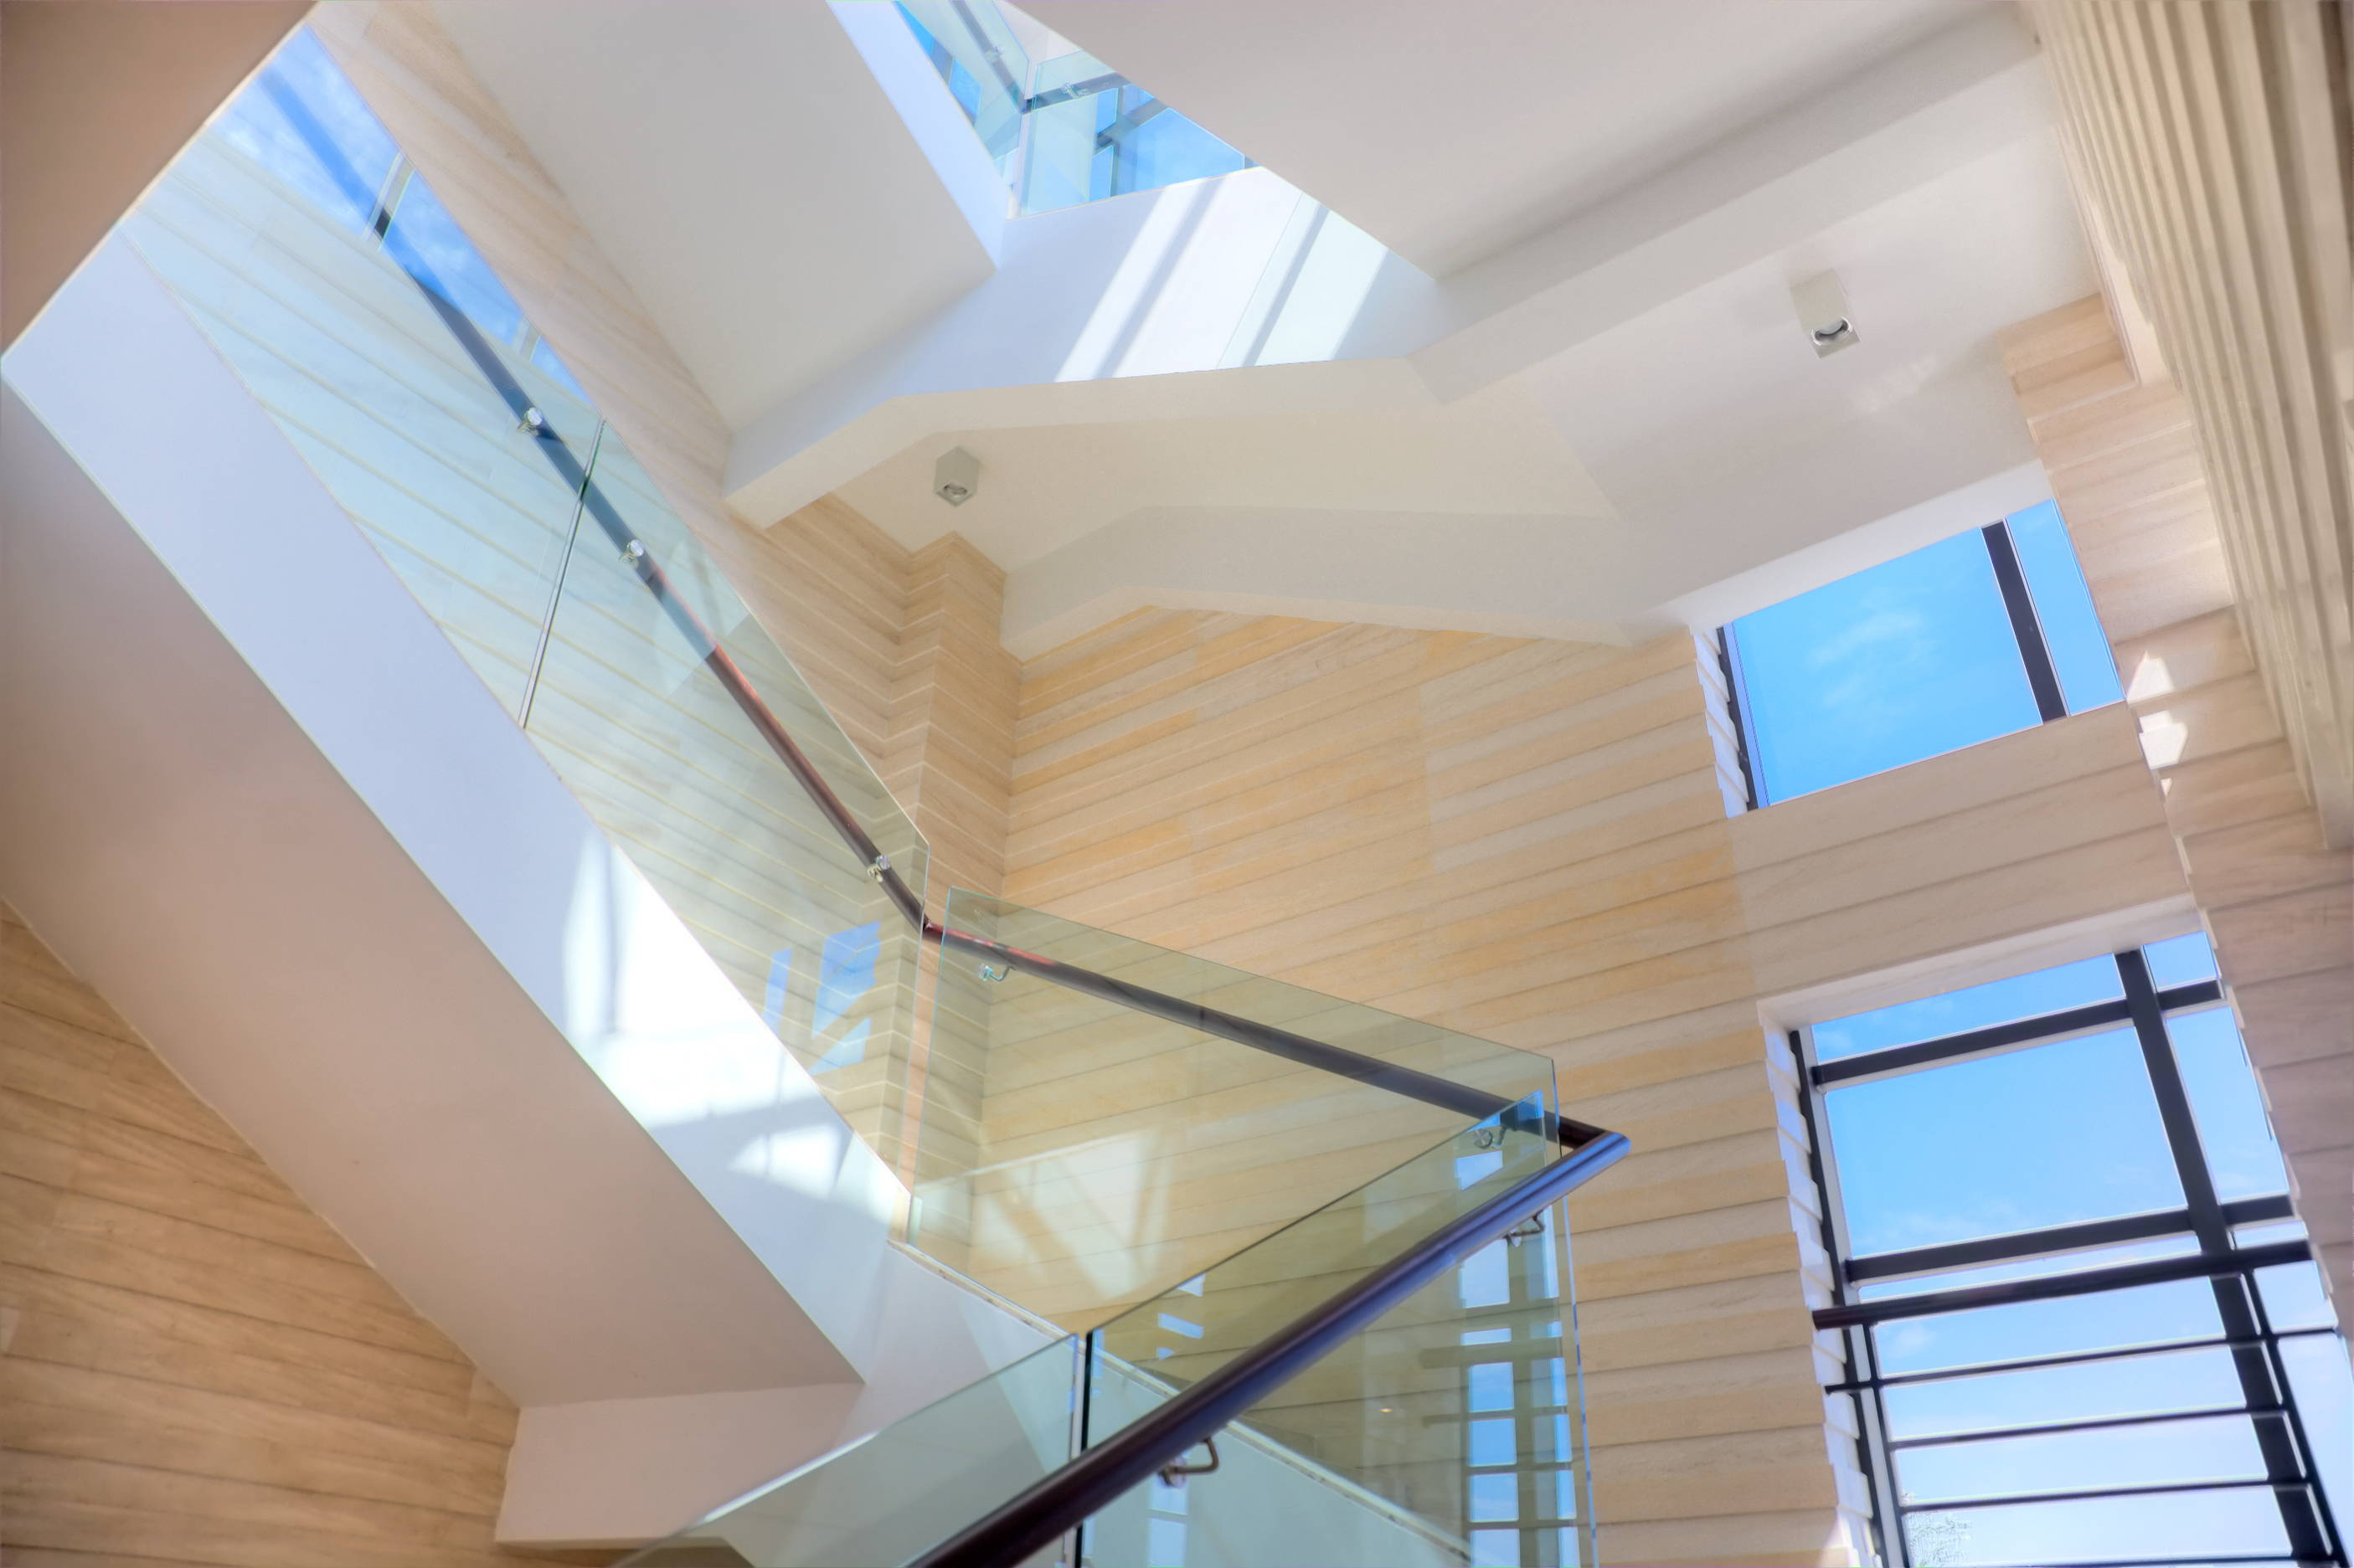 Glass railing with metal handrails